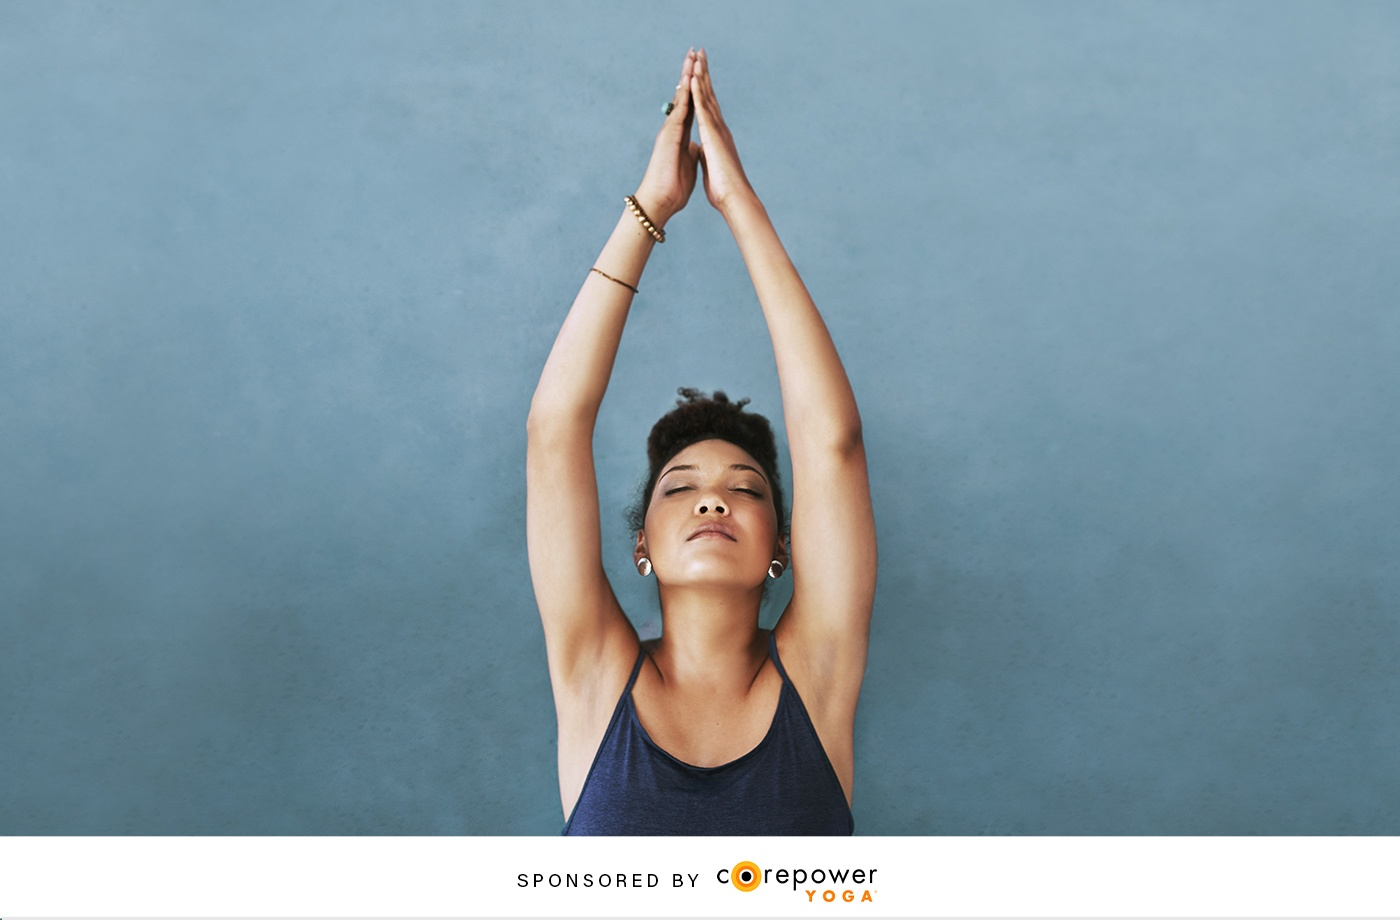 On the fence about taking up yoga? These 3 mental health benefits might change your mind